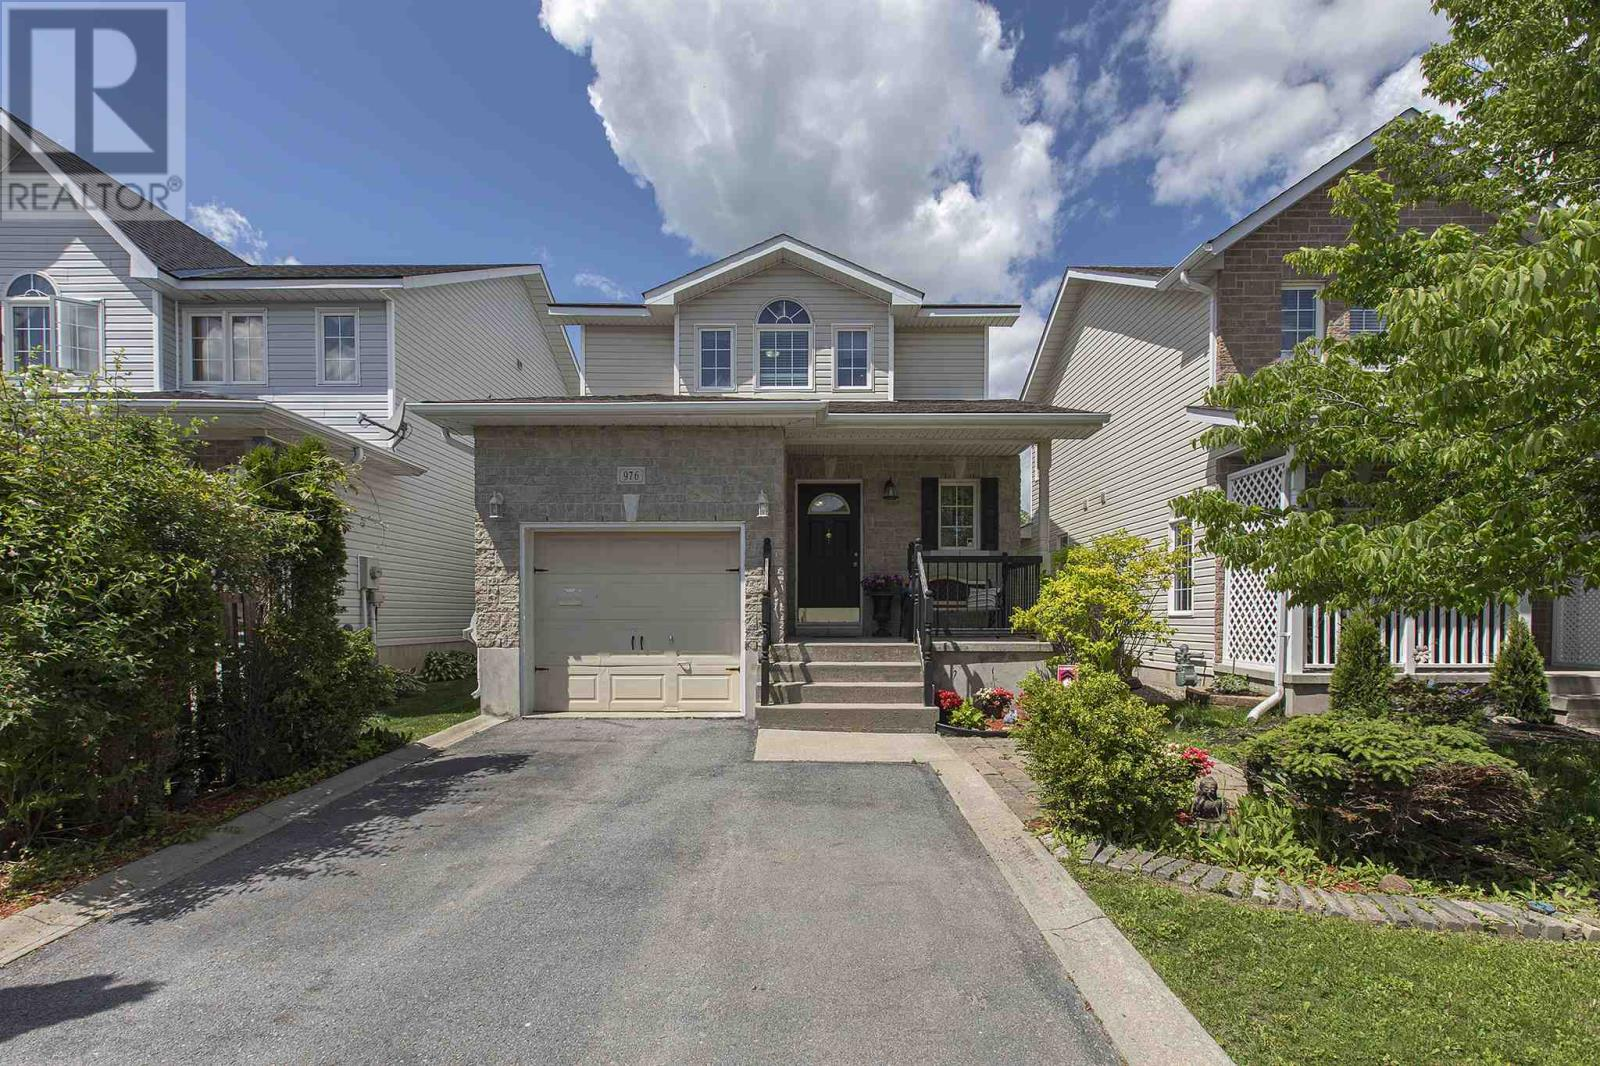 Removed: 976 Bluffwood Avenue, Kingston, ON - Removed on 2019-06-21 06:42:18